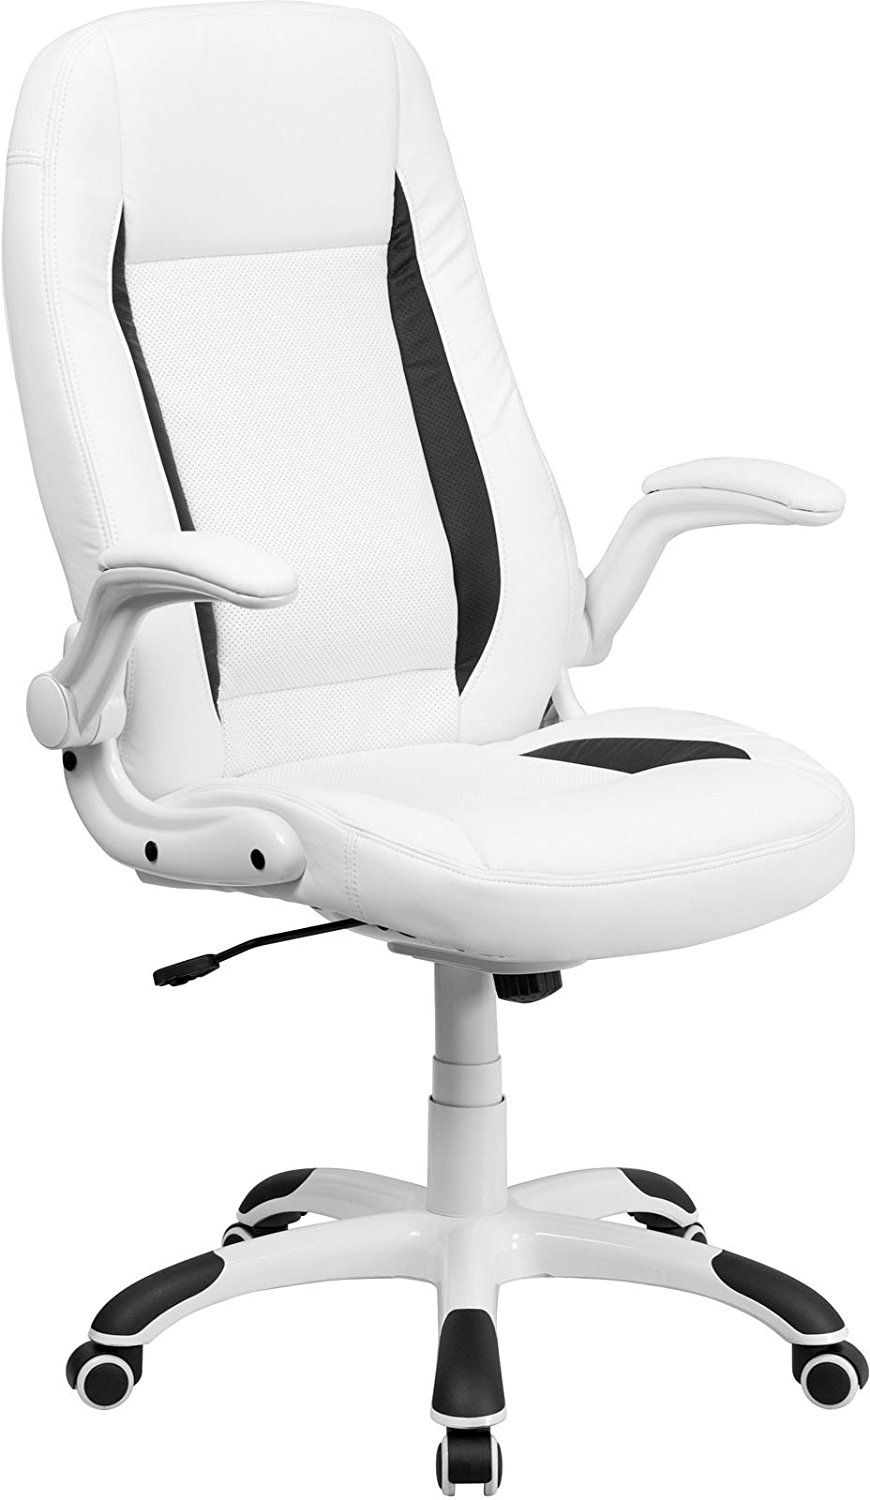 Champagne NOR-OUG104CP-SO Norwood Commercial Furniture Executive Chair with Flip-Up Arms